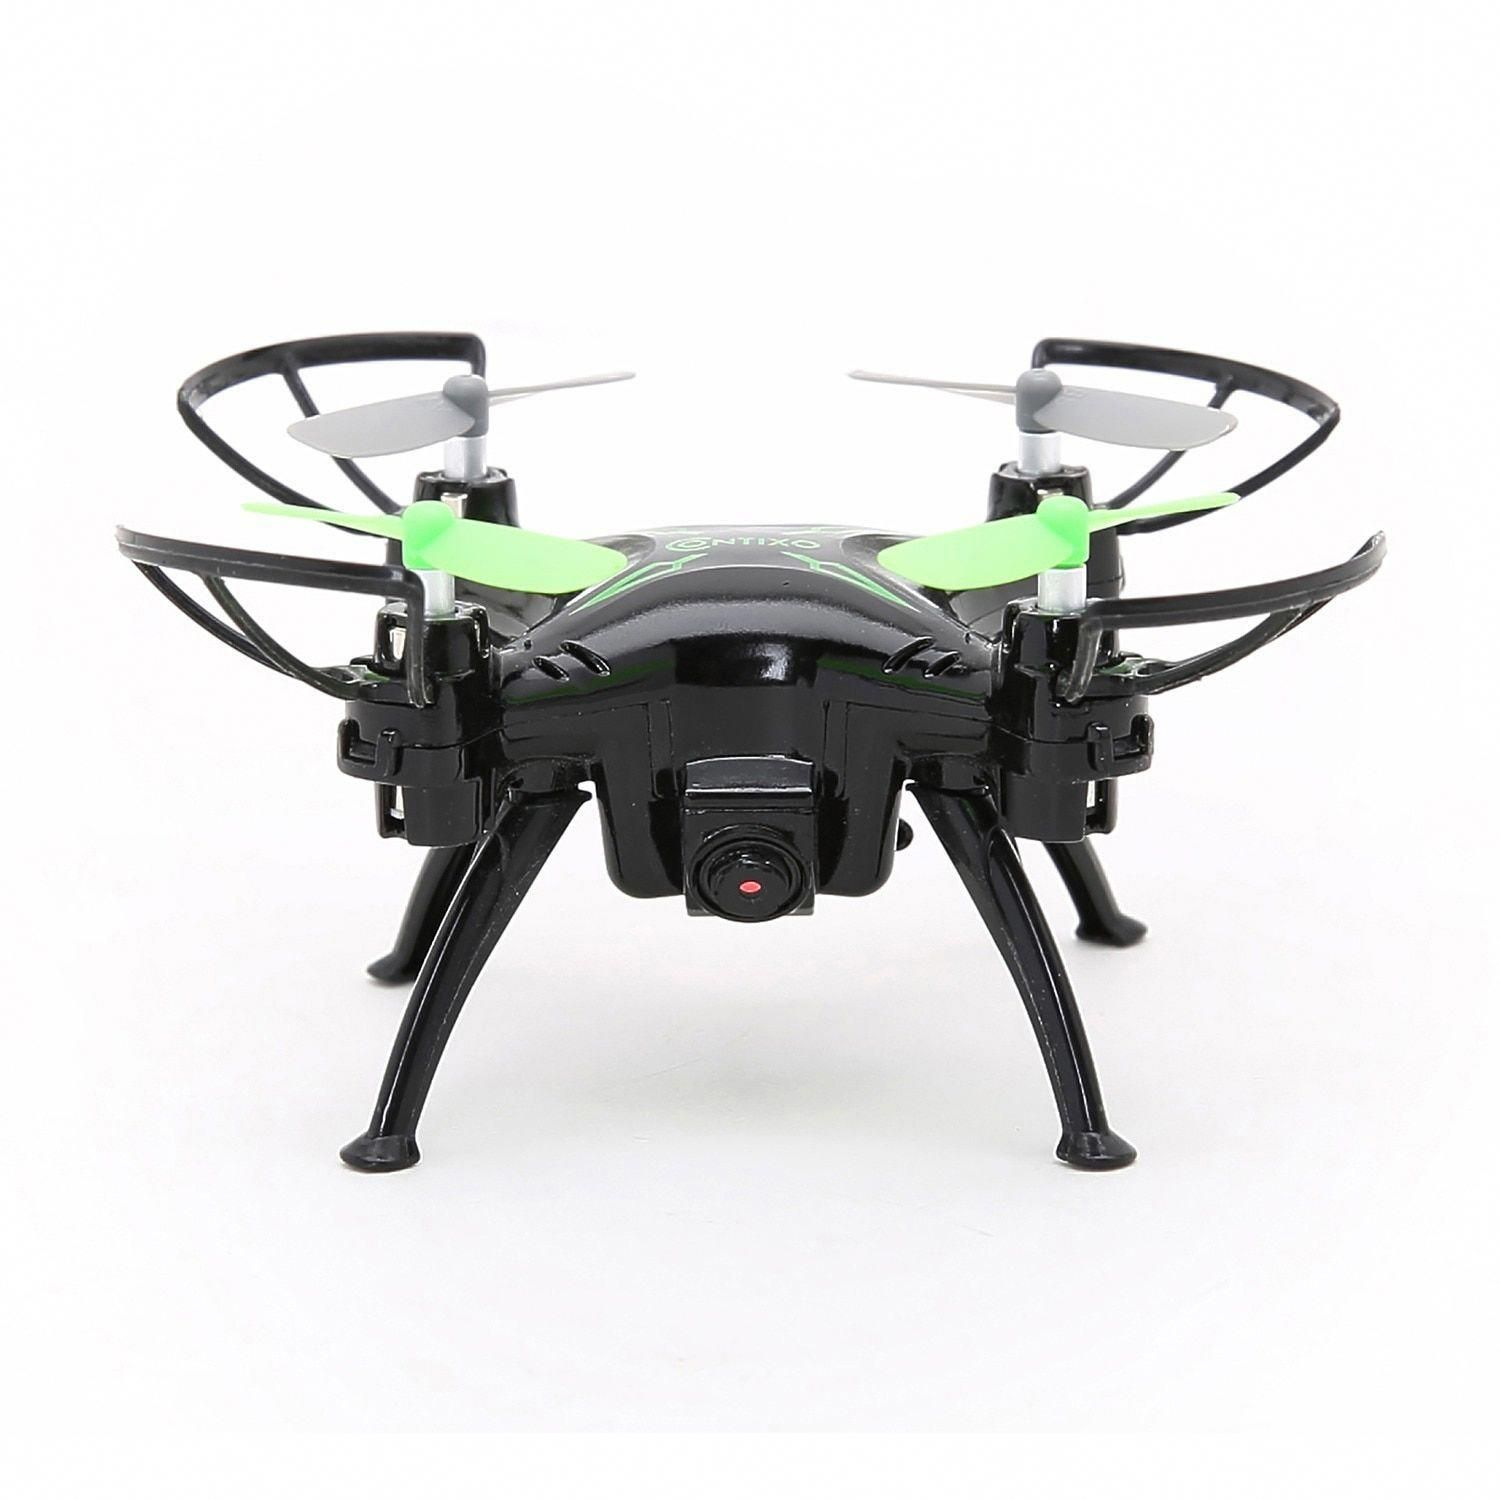 Contixo worlds easiest fly app trackcontrolled mini